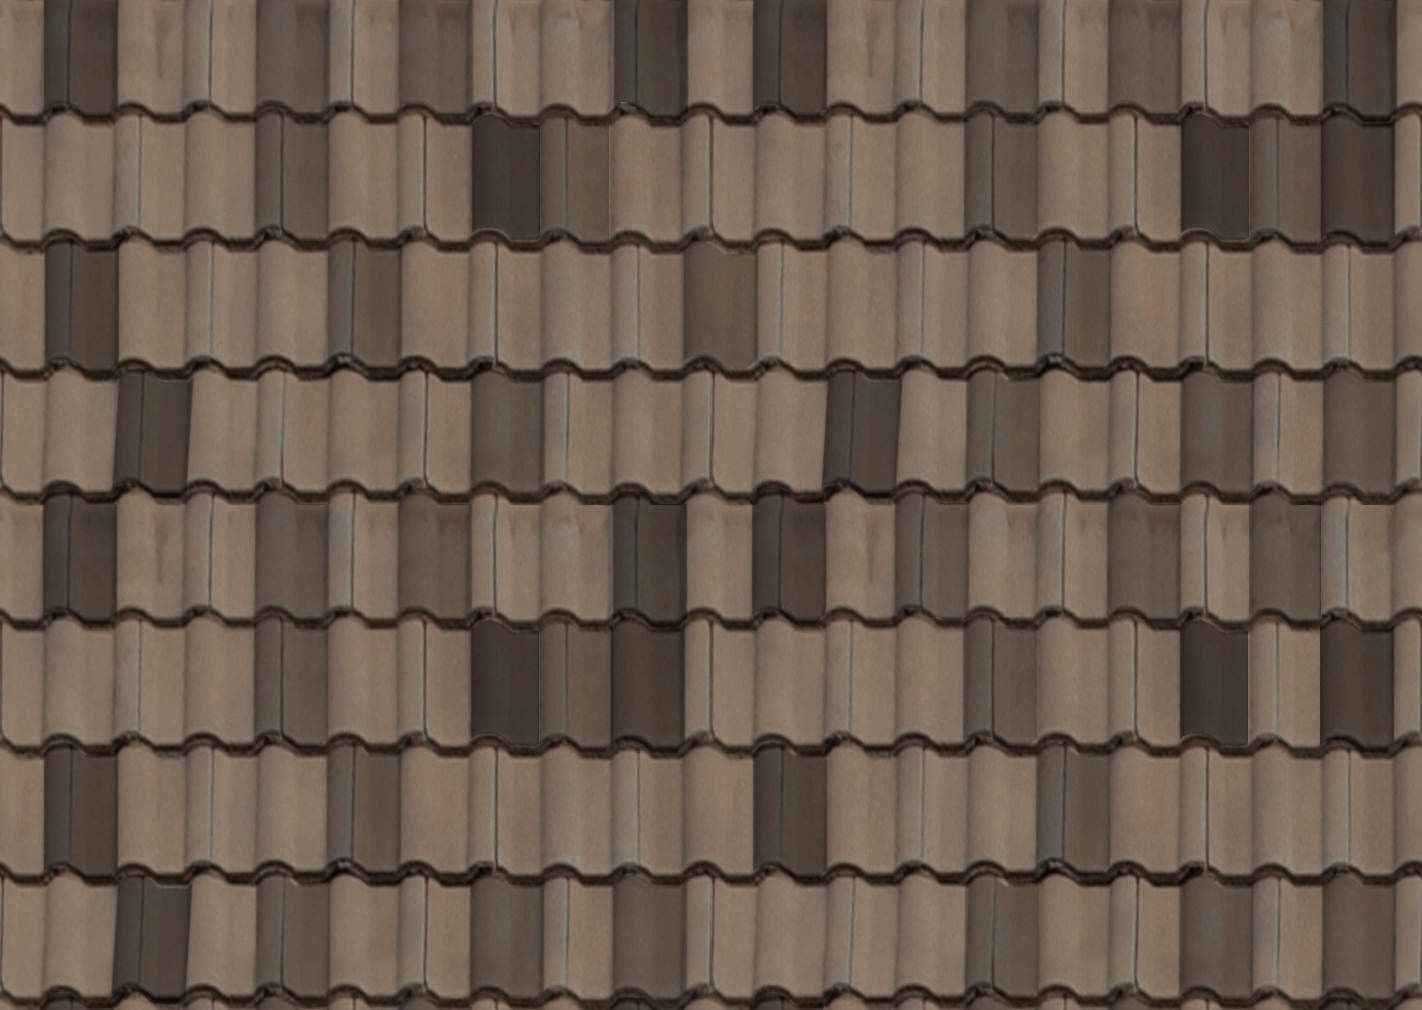 Brick Roof Texture texture collection in hd vol 14 #texture, #pattern, #wood #brick